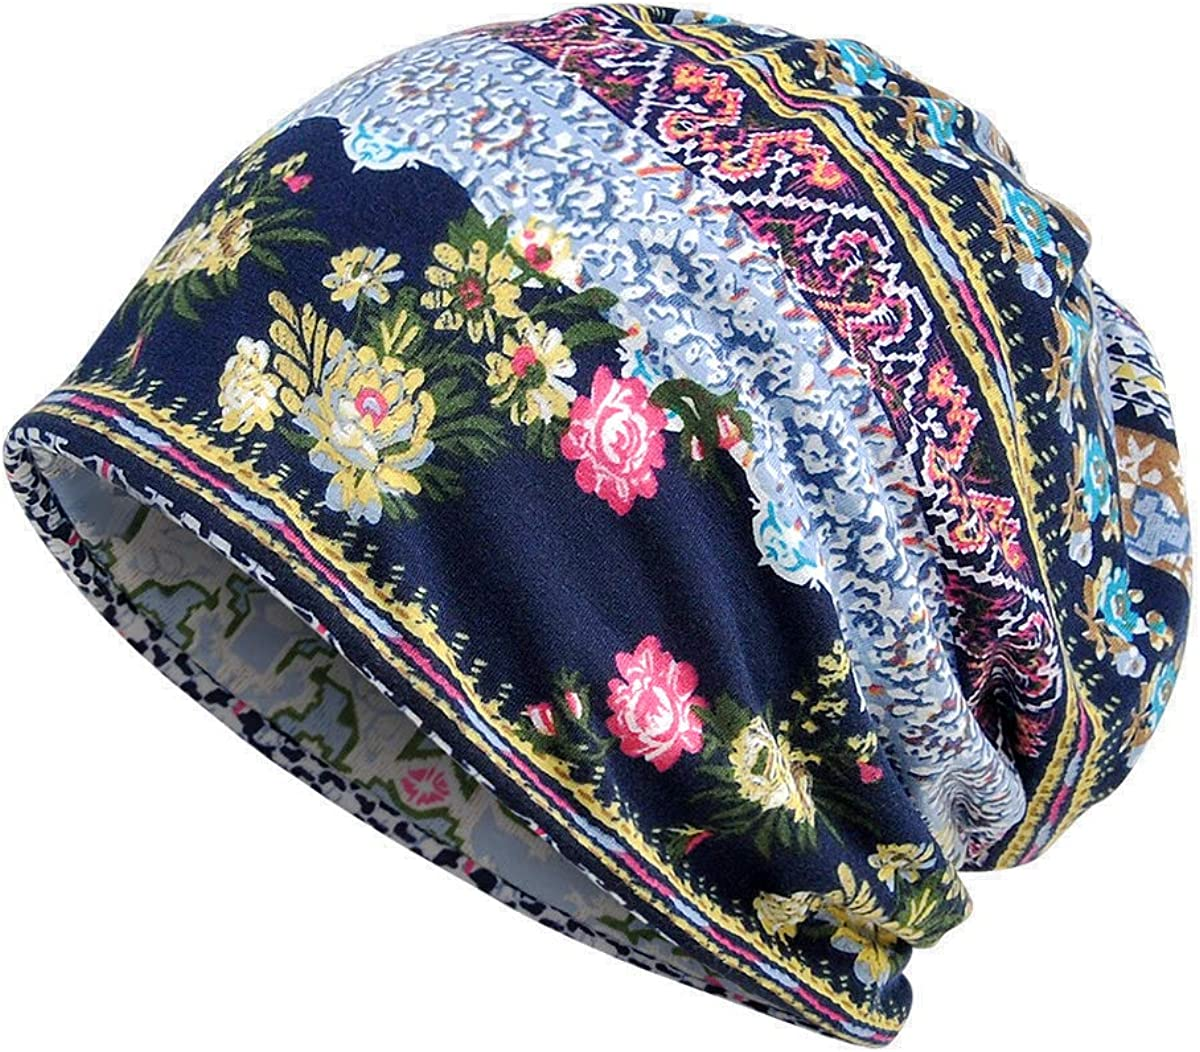 Yuzemumu Lace Beanies Chemo Caps Cancer Skull Cap Knitted hat for Womens